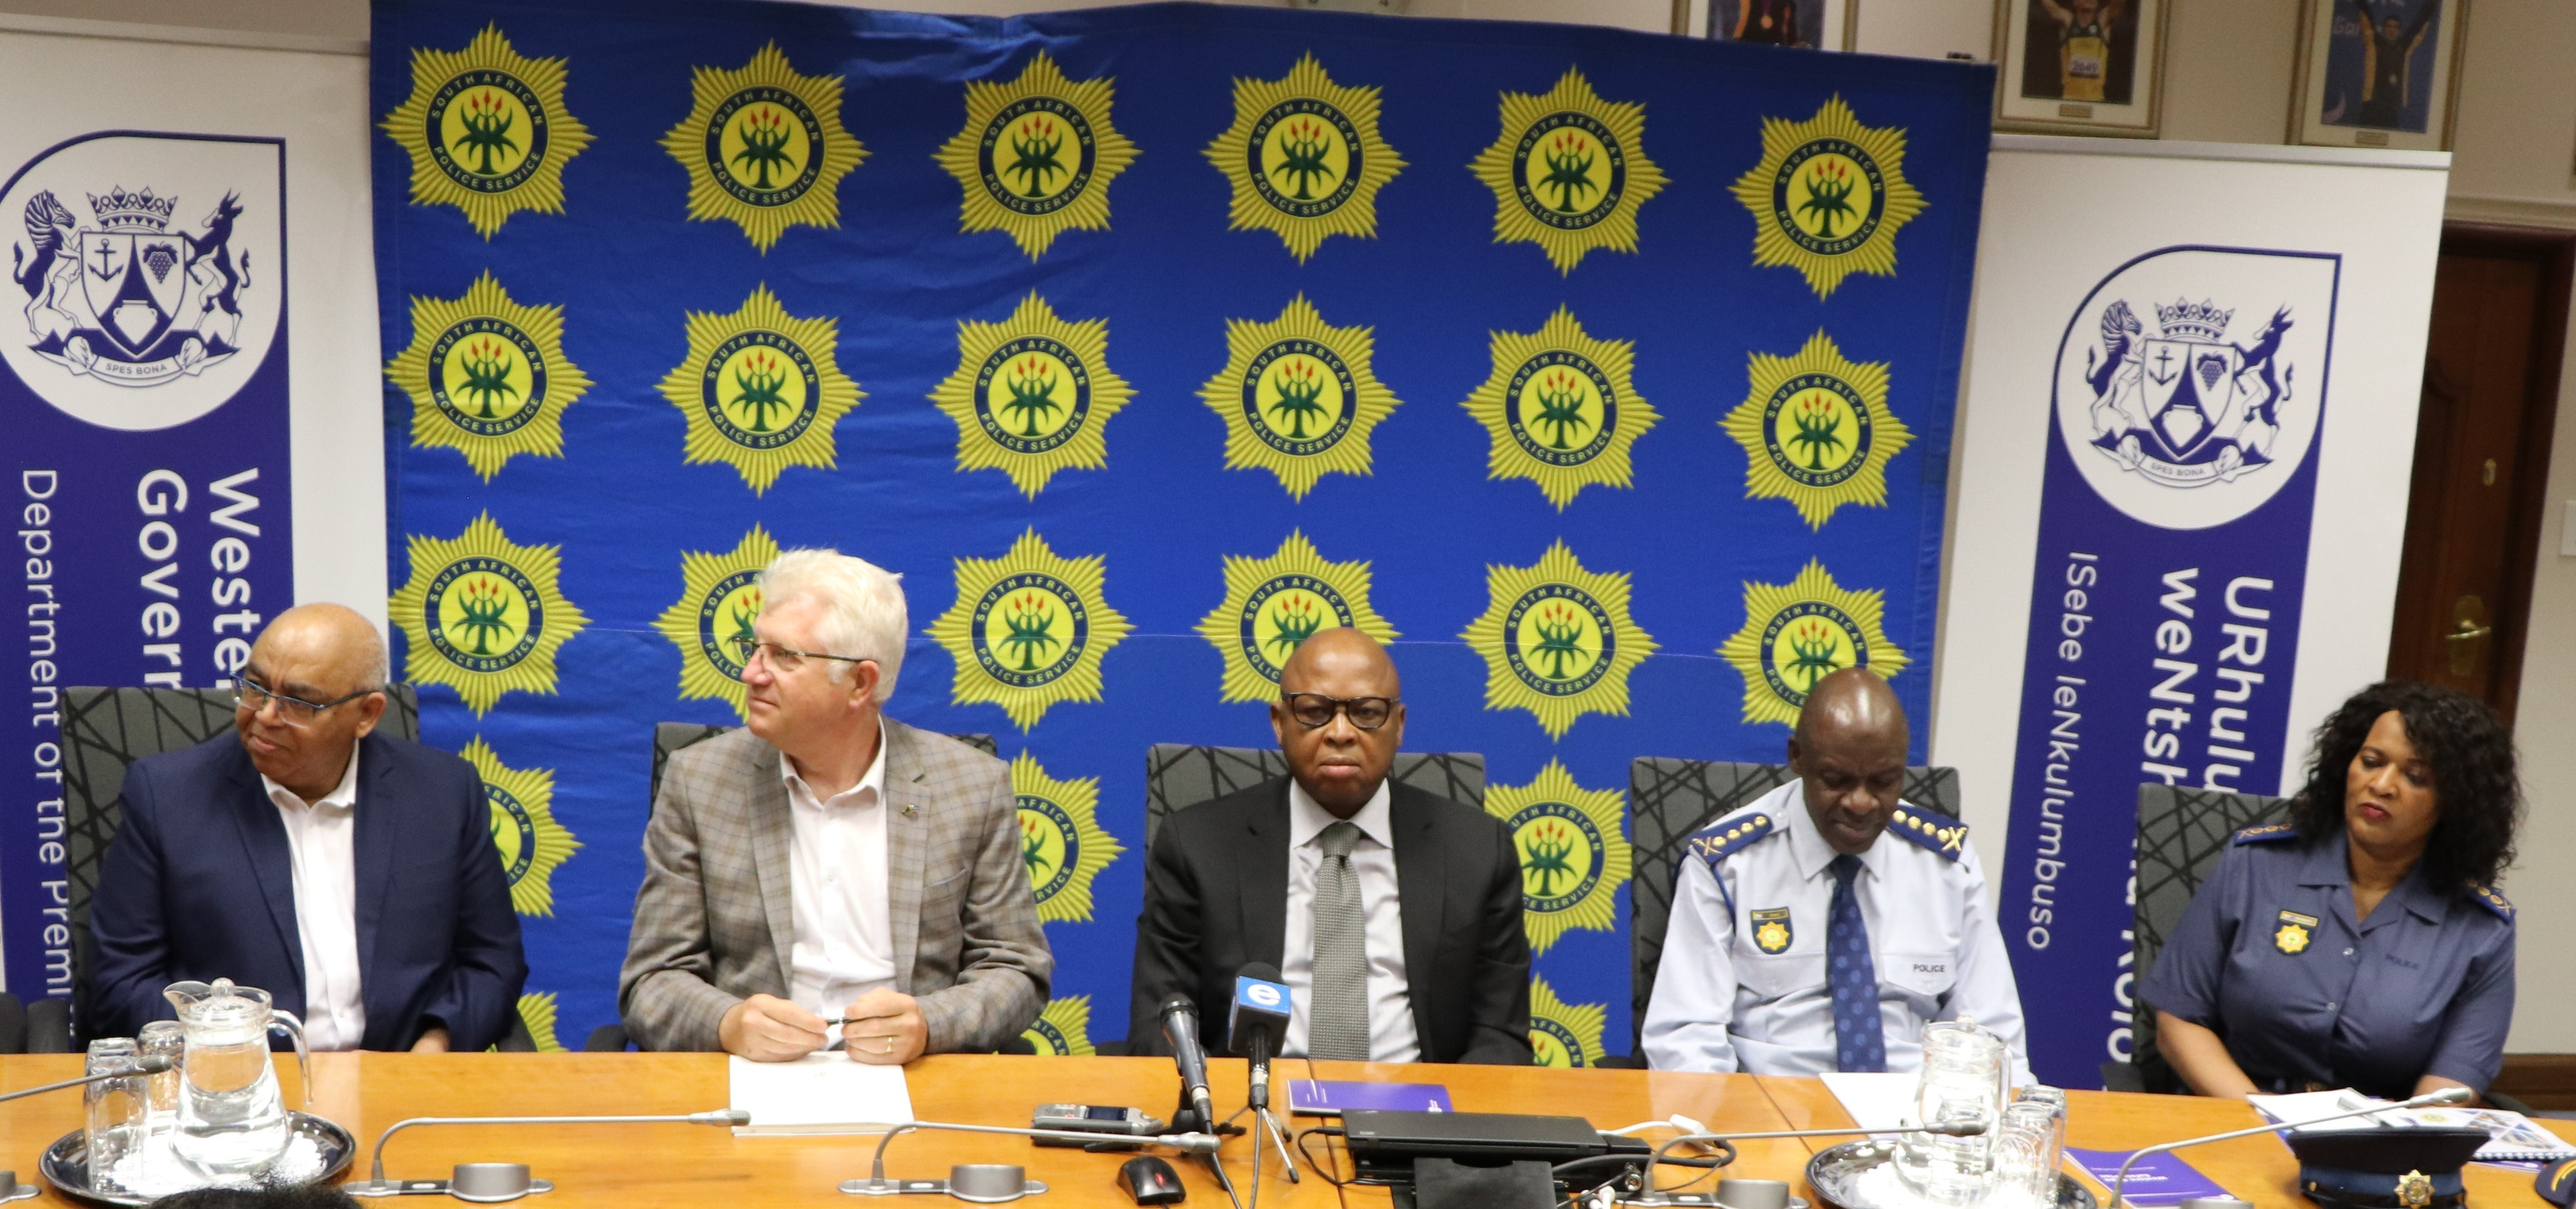 (From left) Western Cape Minister of Community Safety, Premier Alan Winde, Deputy National Police Minister Cassel Mathale, National Police Commissioner Khehla  Sithole and the Western Cape Police Commissioner Yolisa Matakata